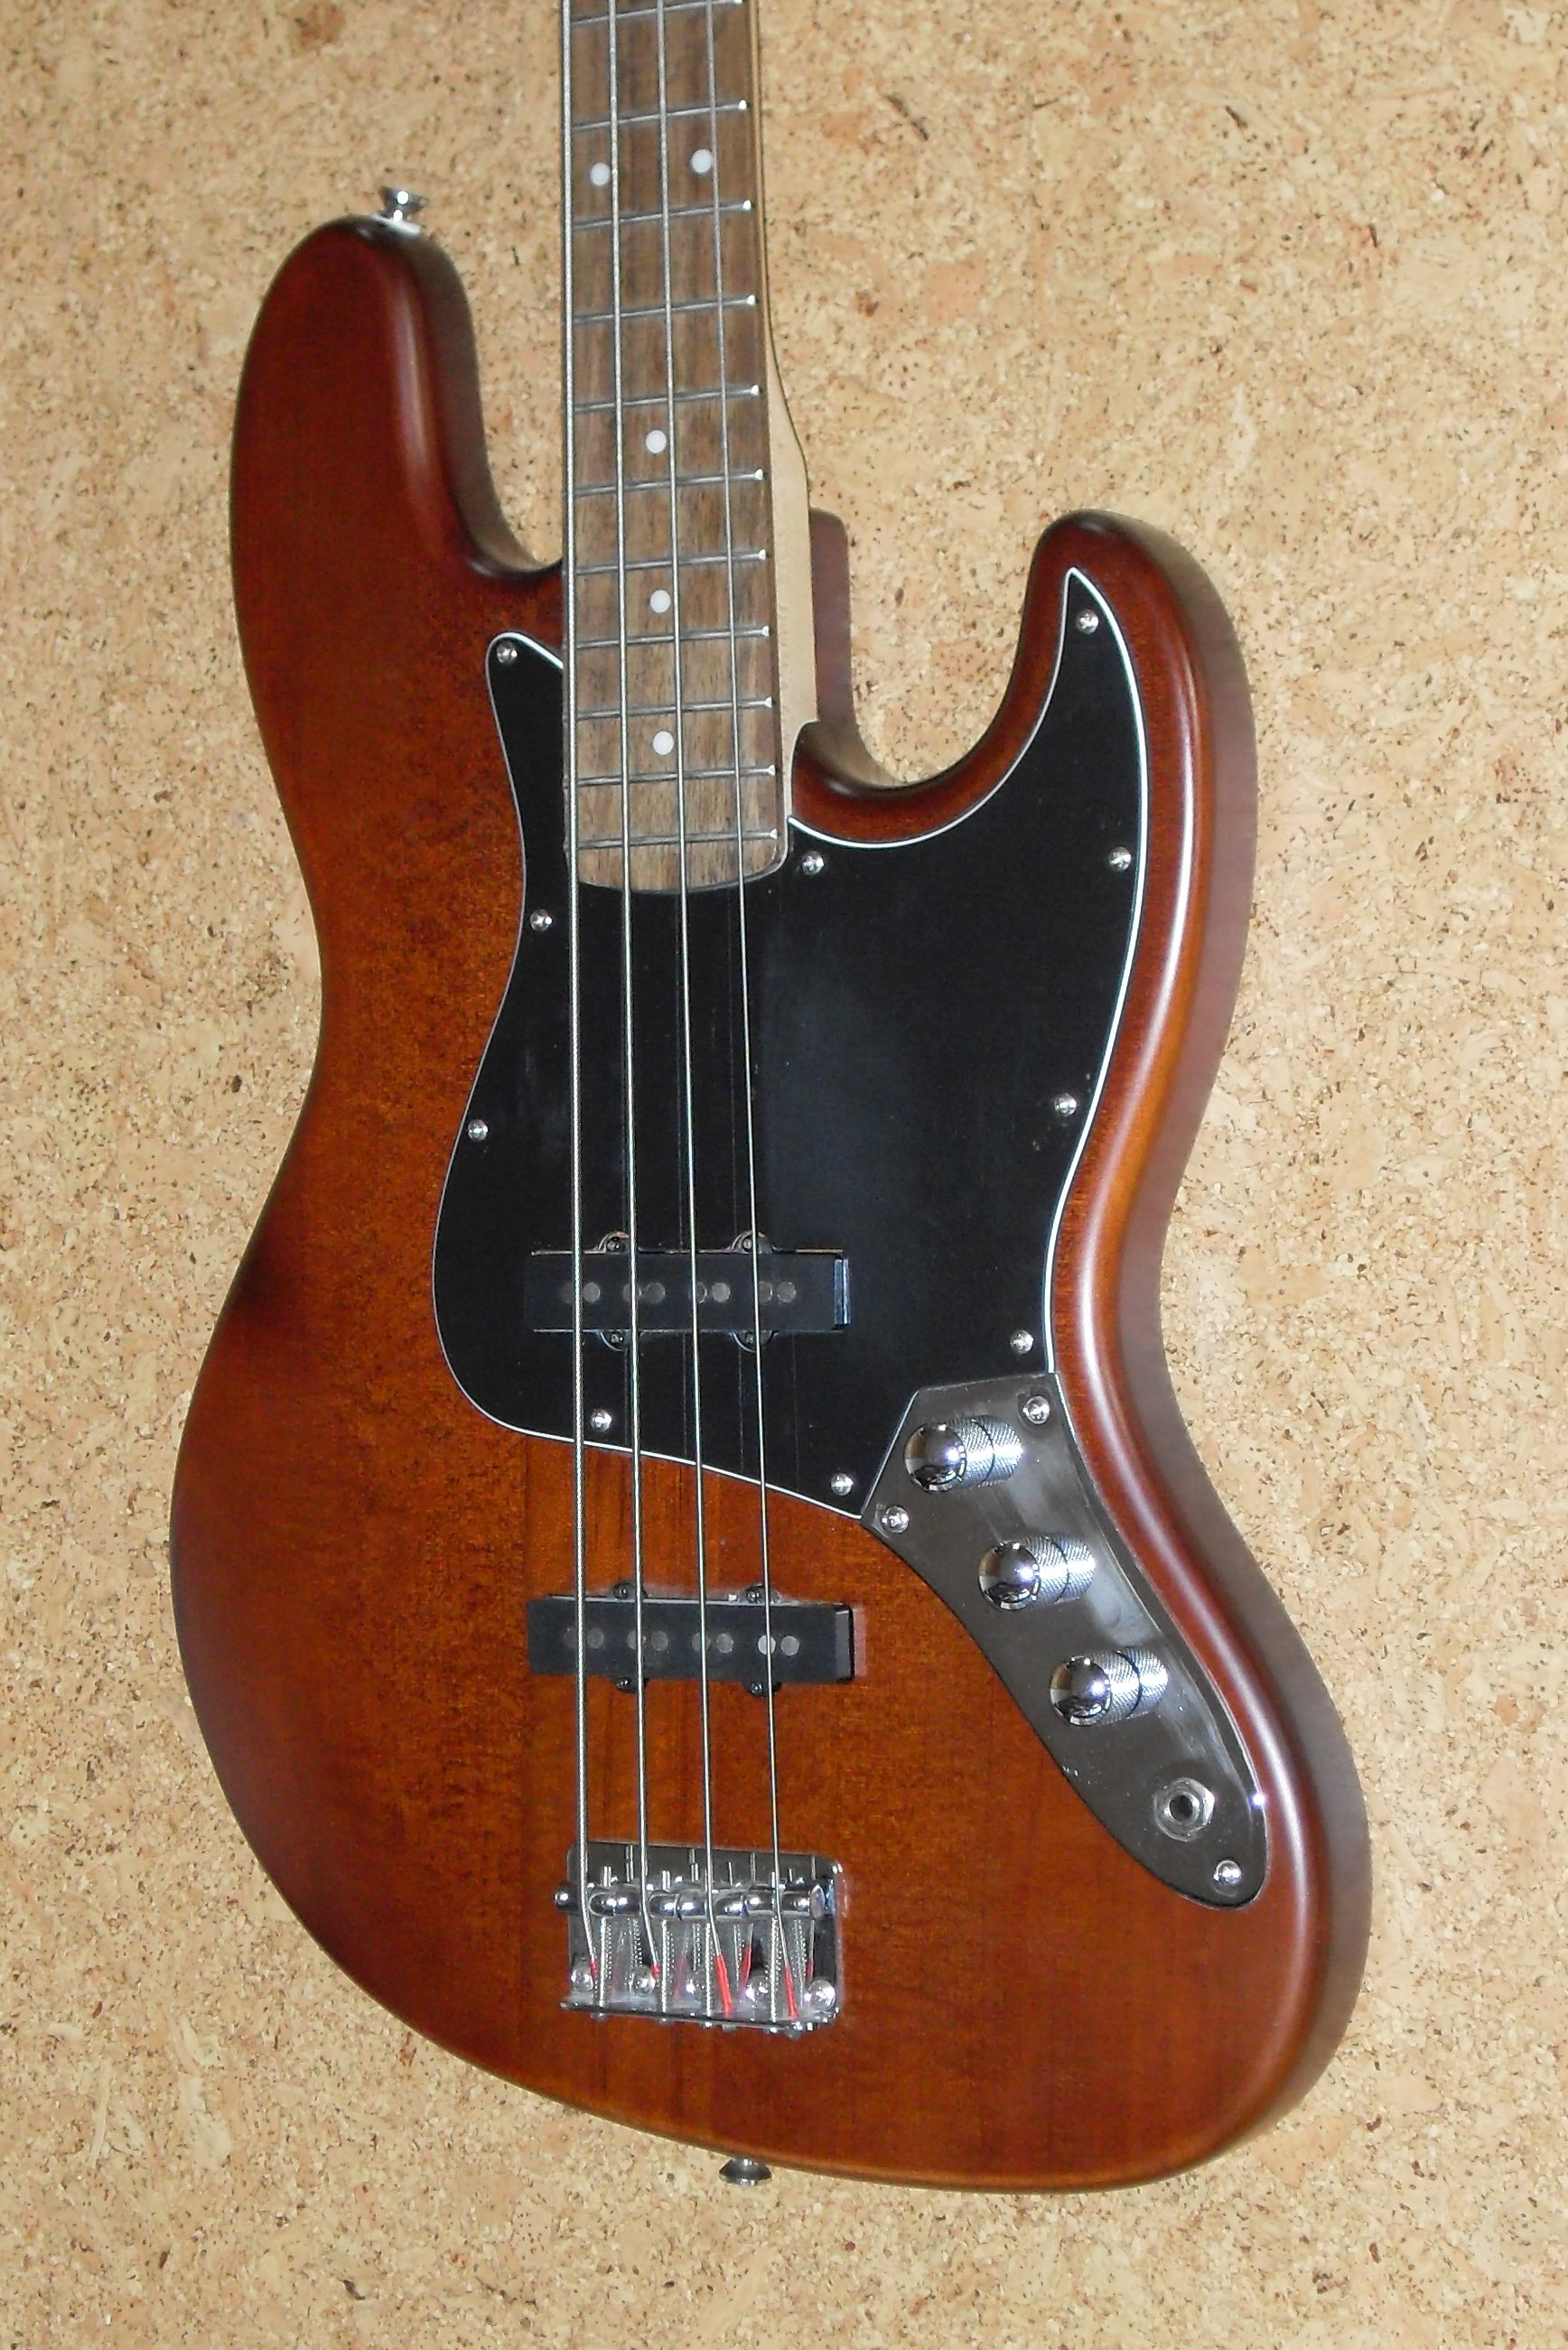 File 4-fender-squier-jazz-bass Jpg